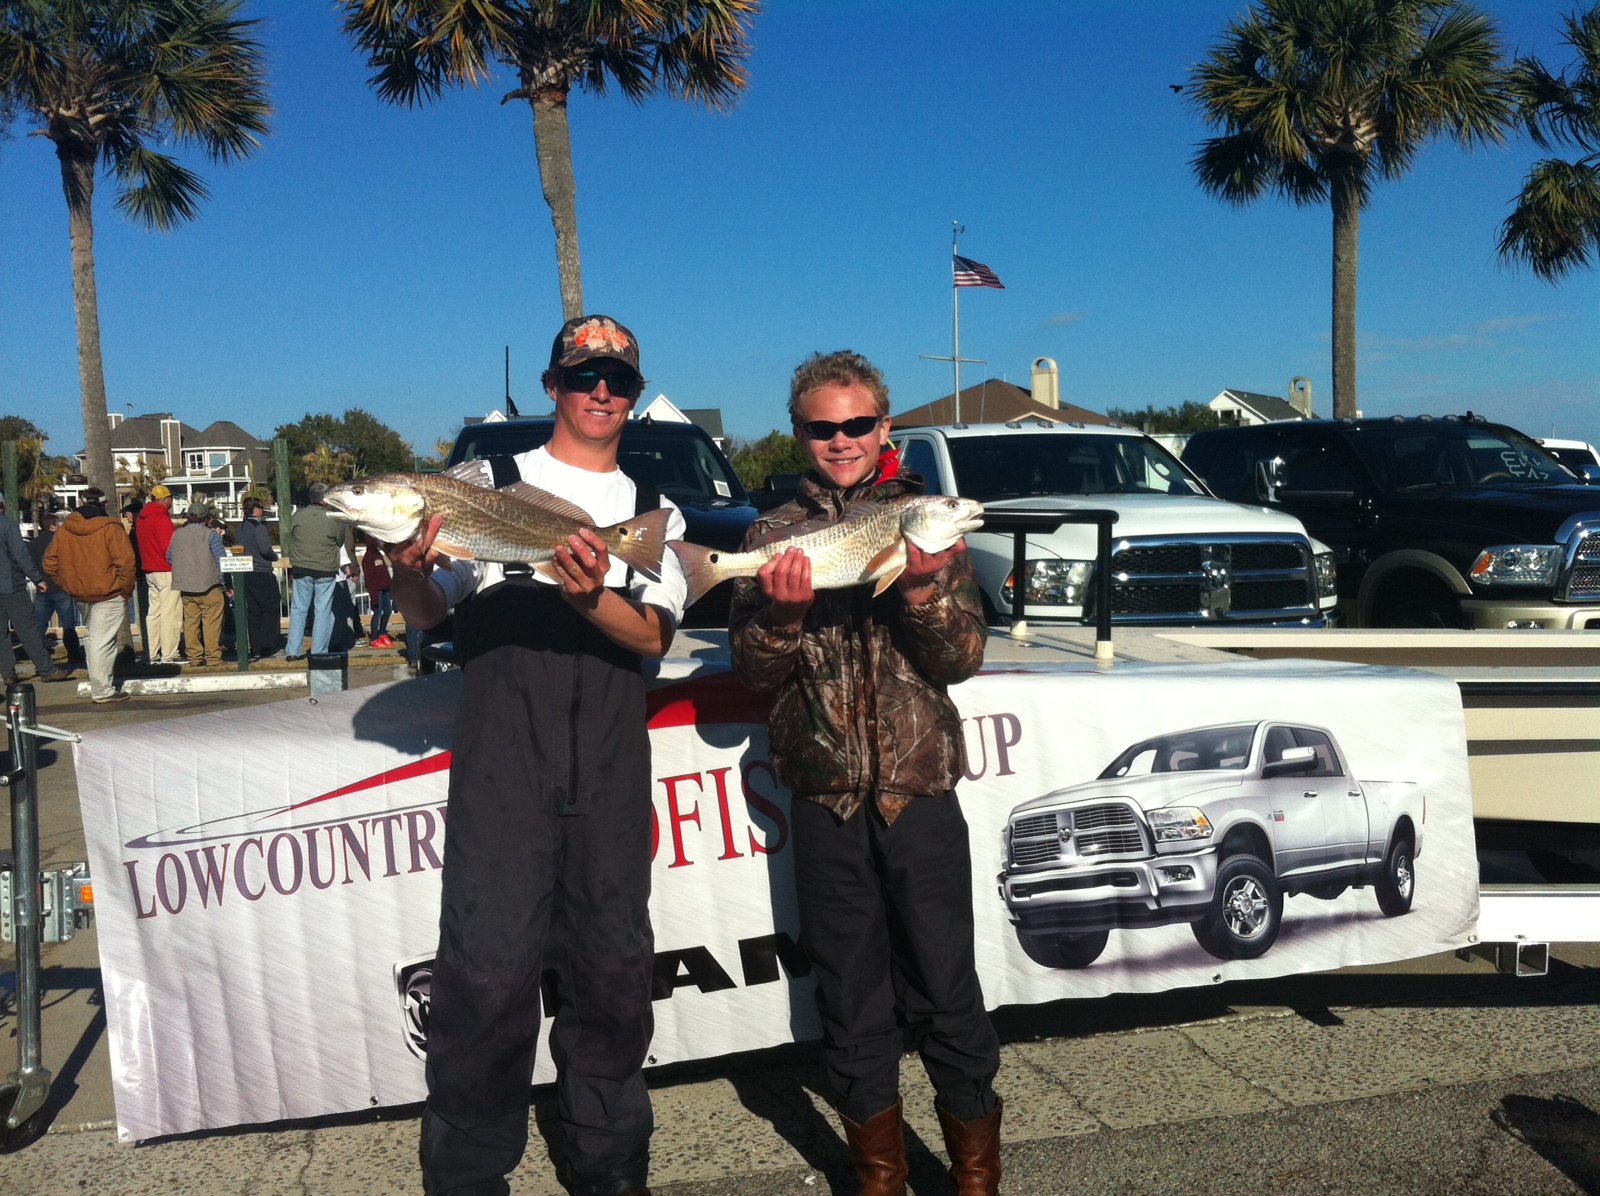 My friend Jonathan and I tied for first with two redfish that went 8.07 pounds.